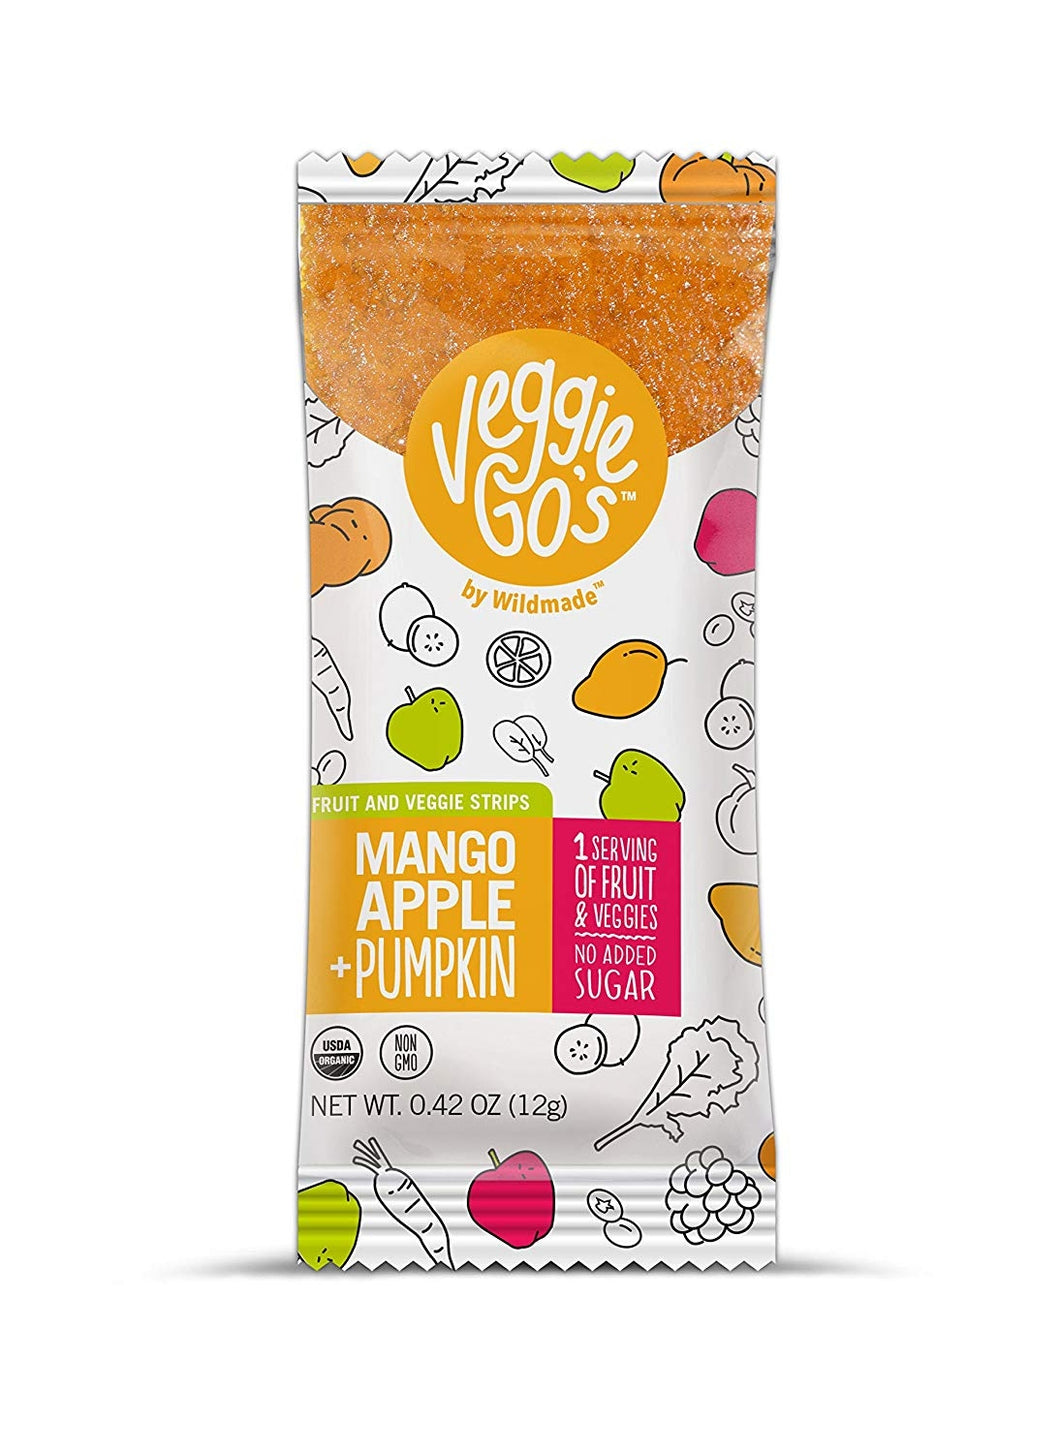 Wild Made Snacks - Veggie Go's Fruit & Veggie Strips - Mango Apple & Pumpkin - .42 oz.